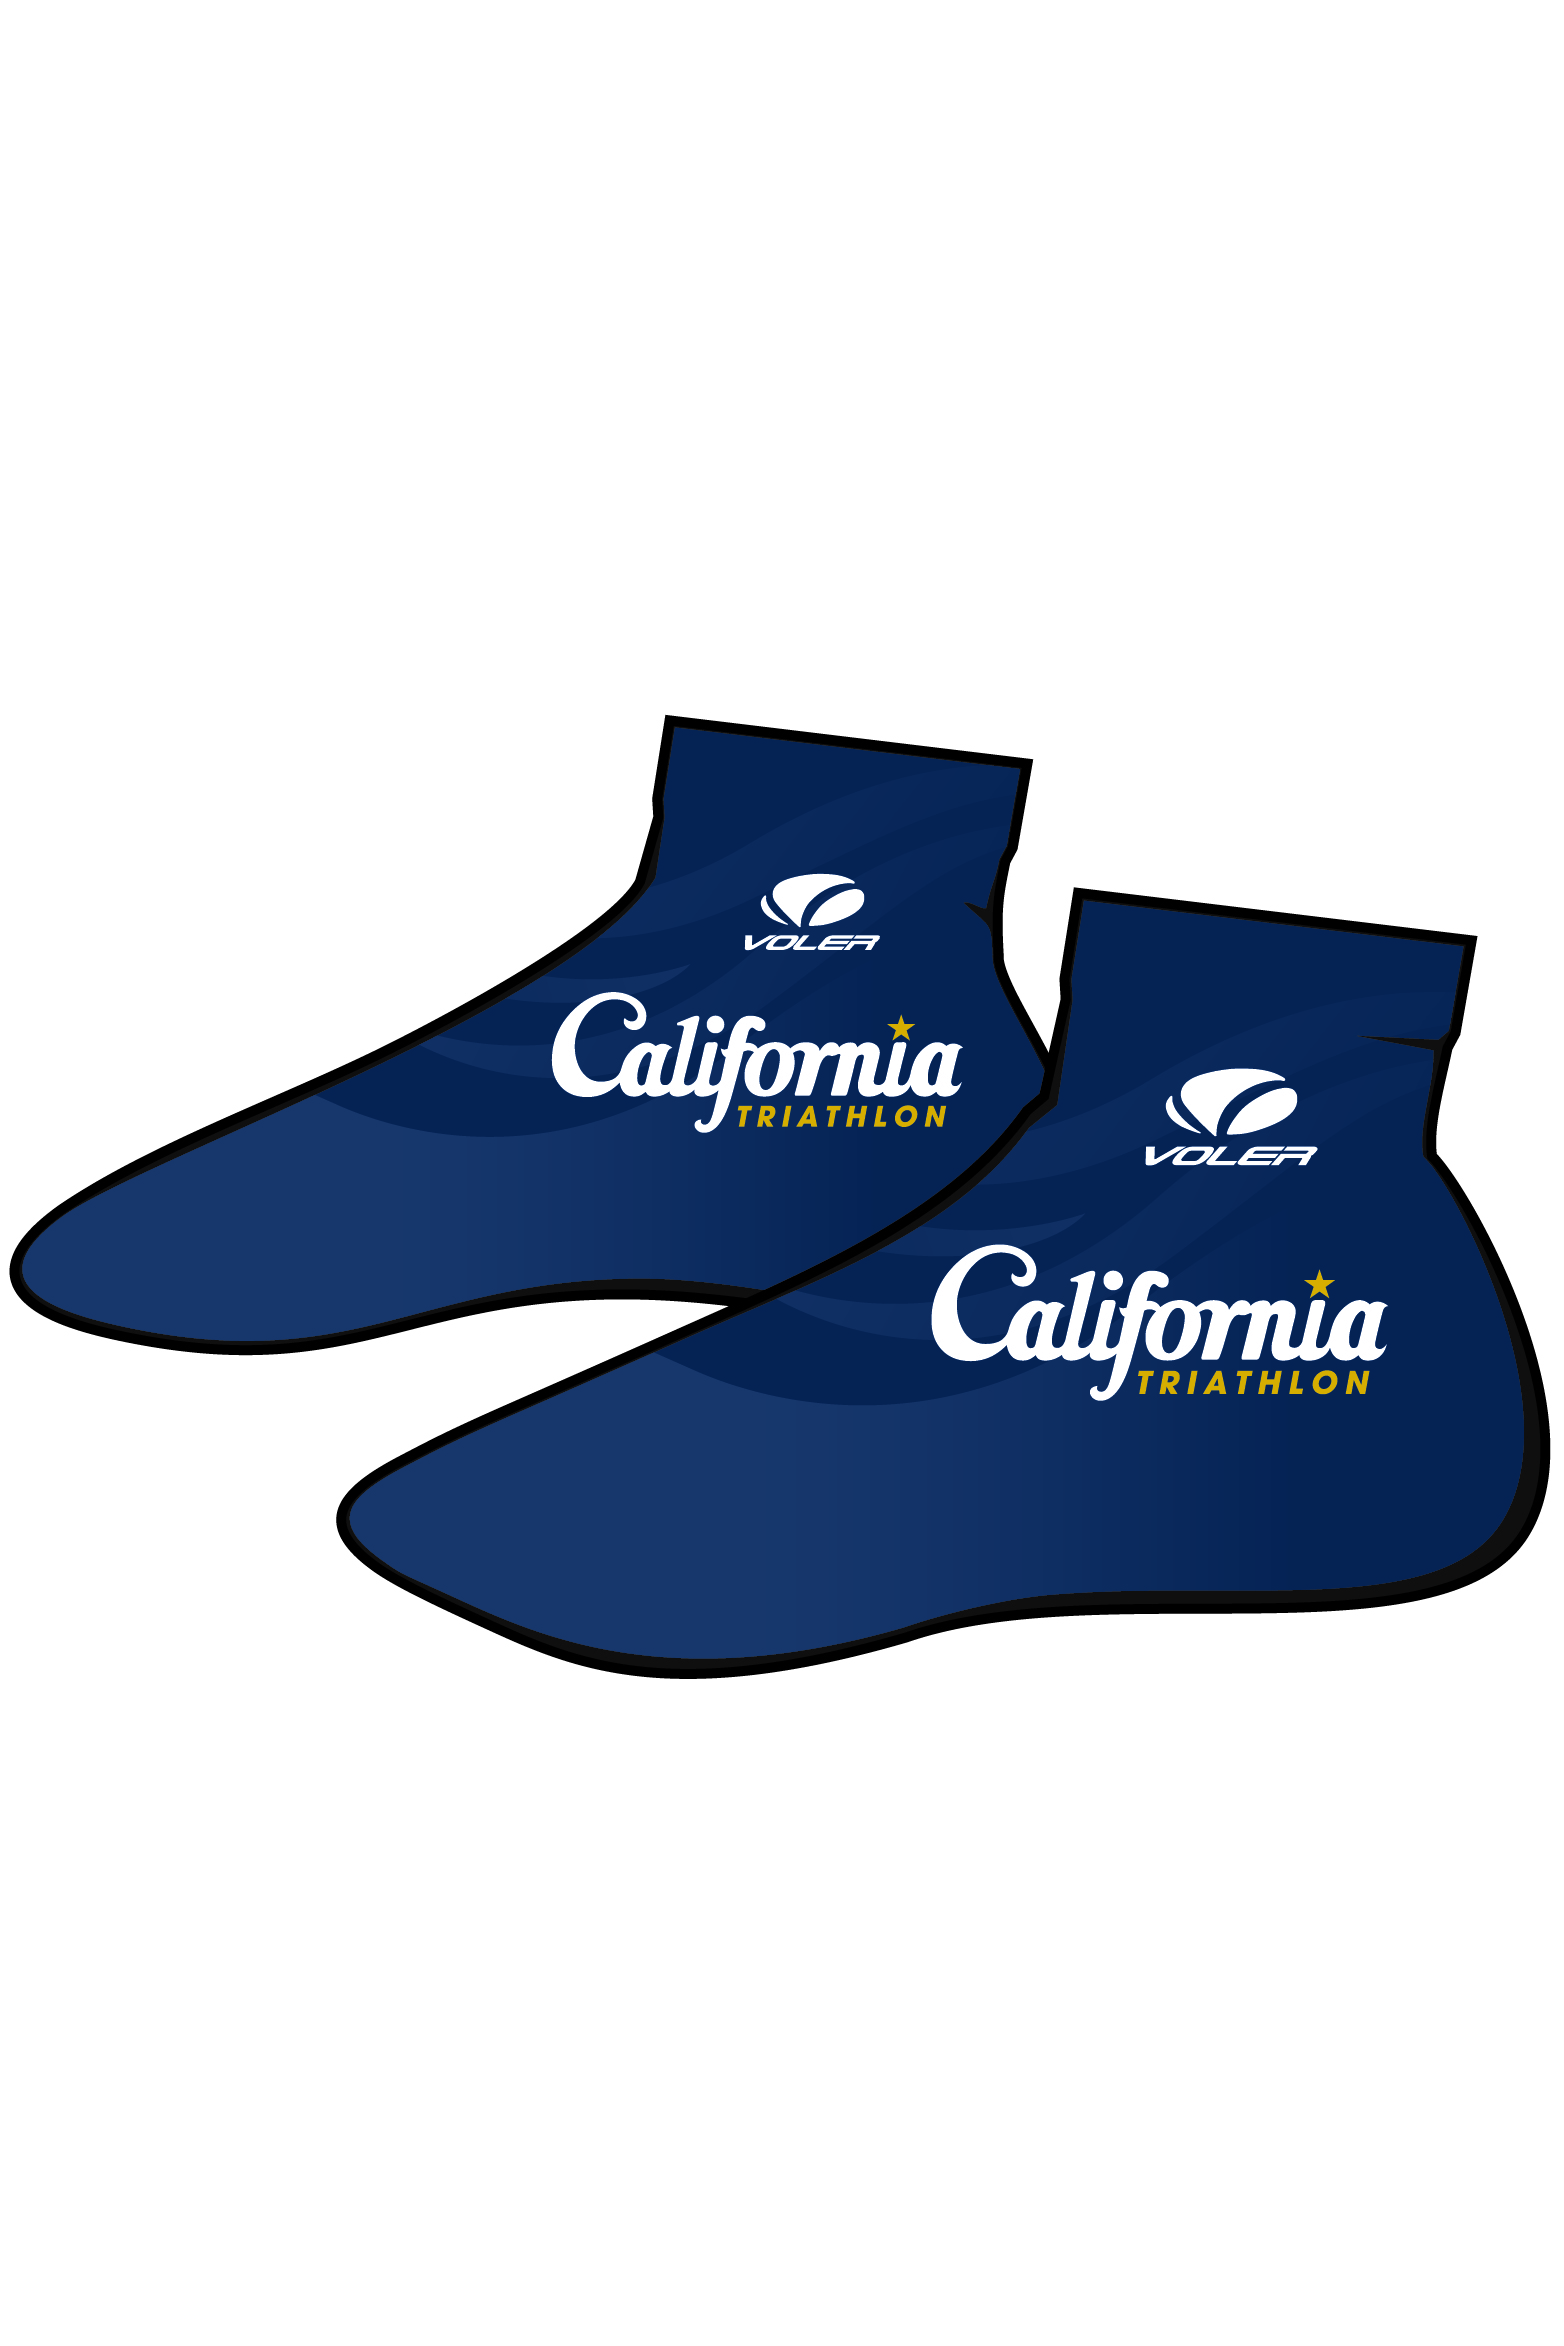 California Triathlon Shoe Covers Image